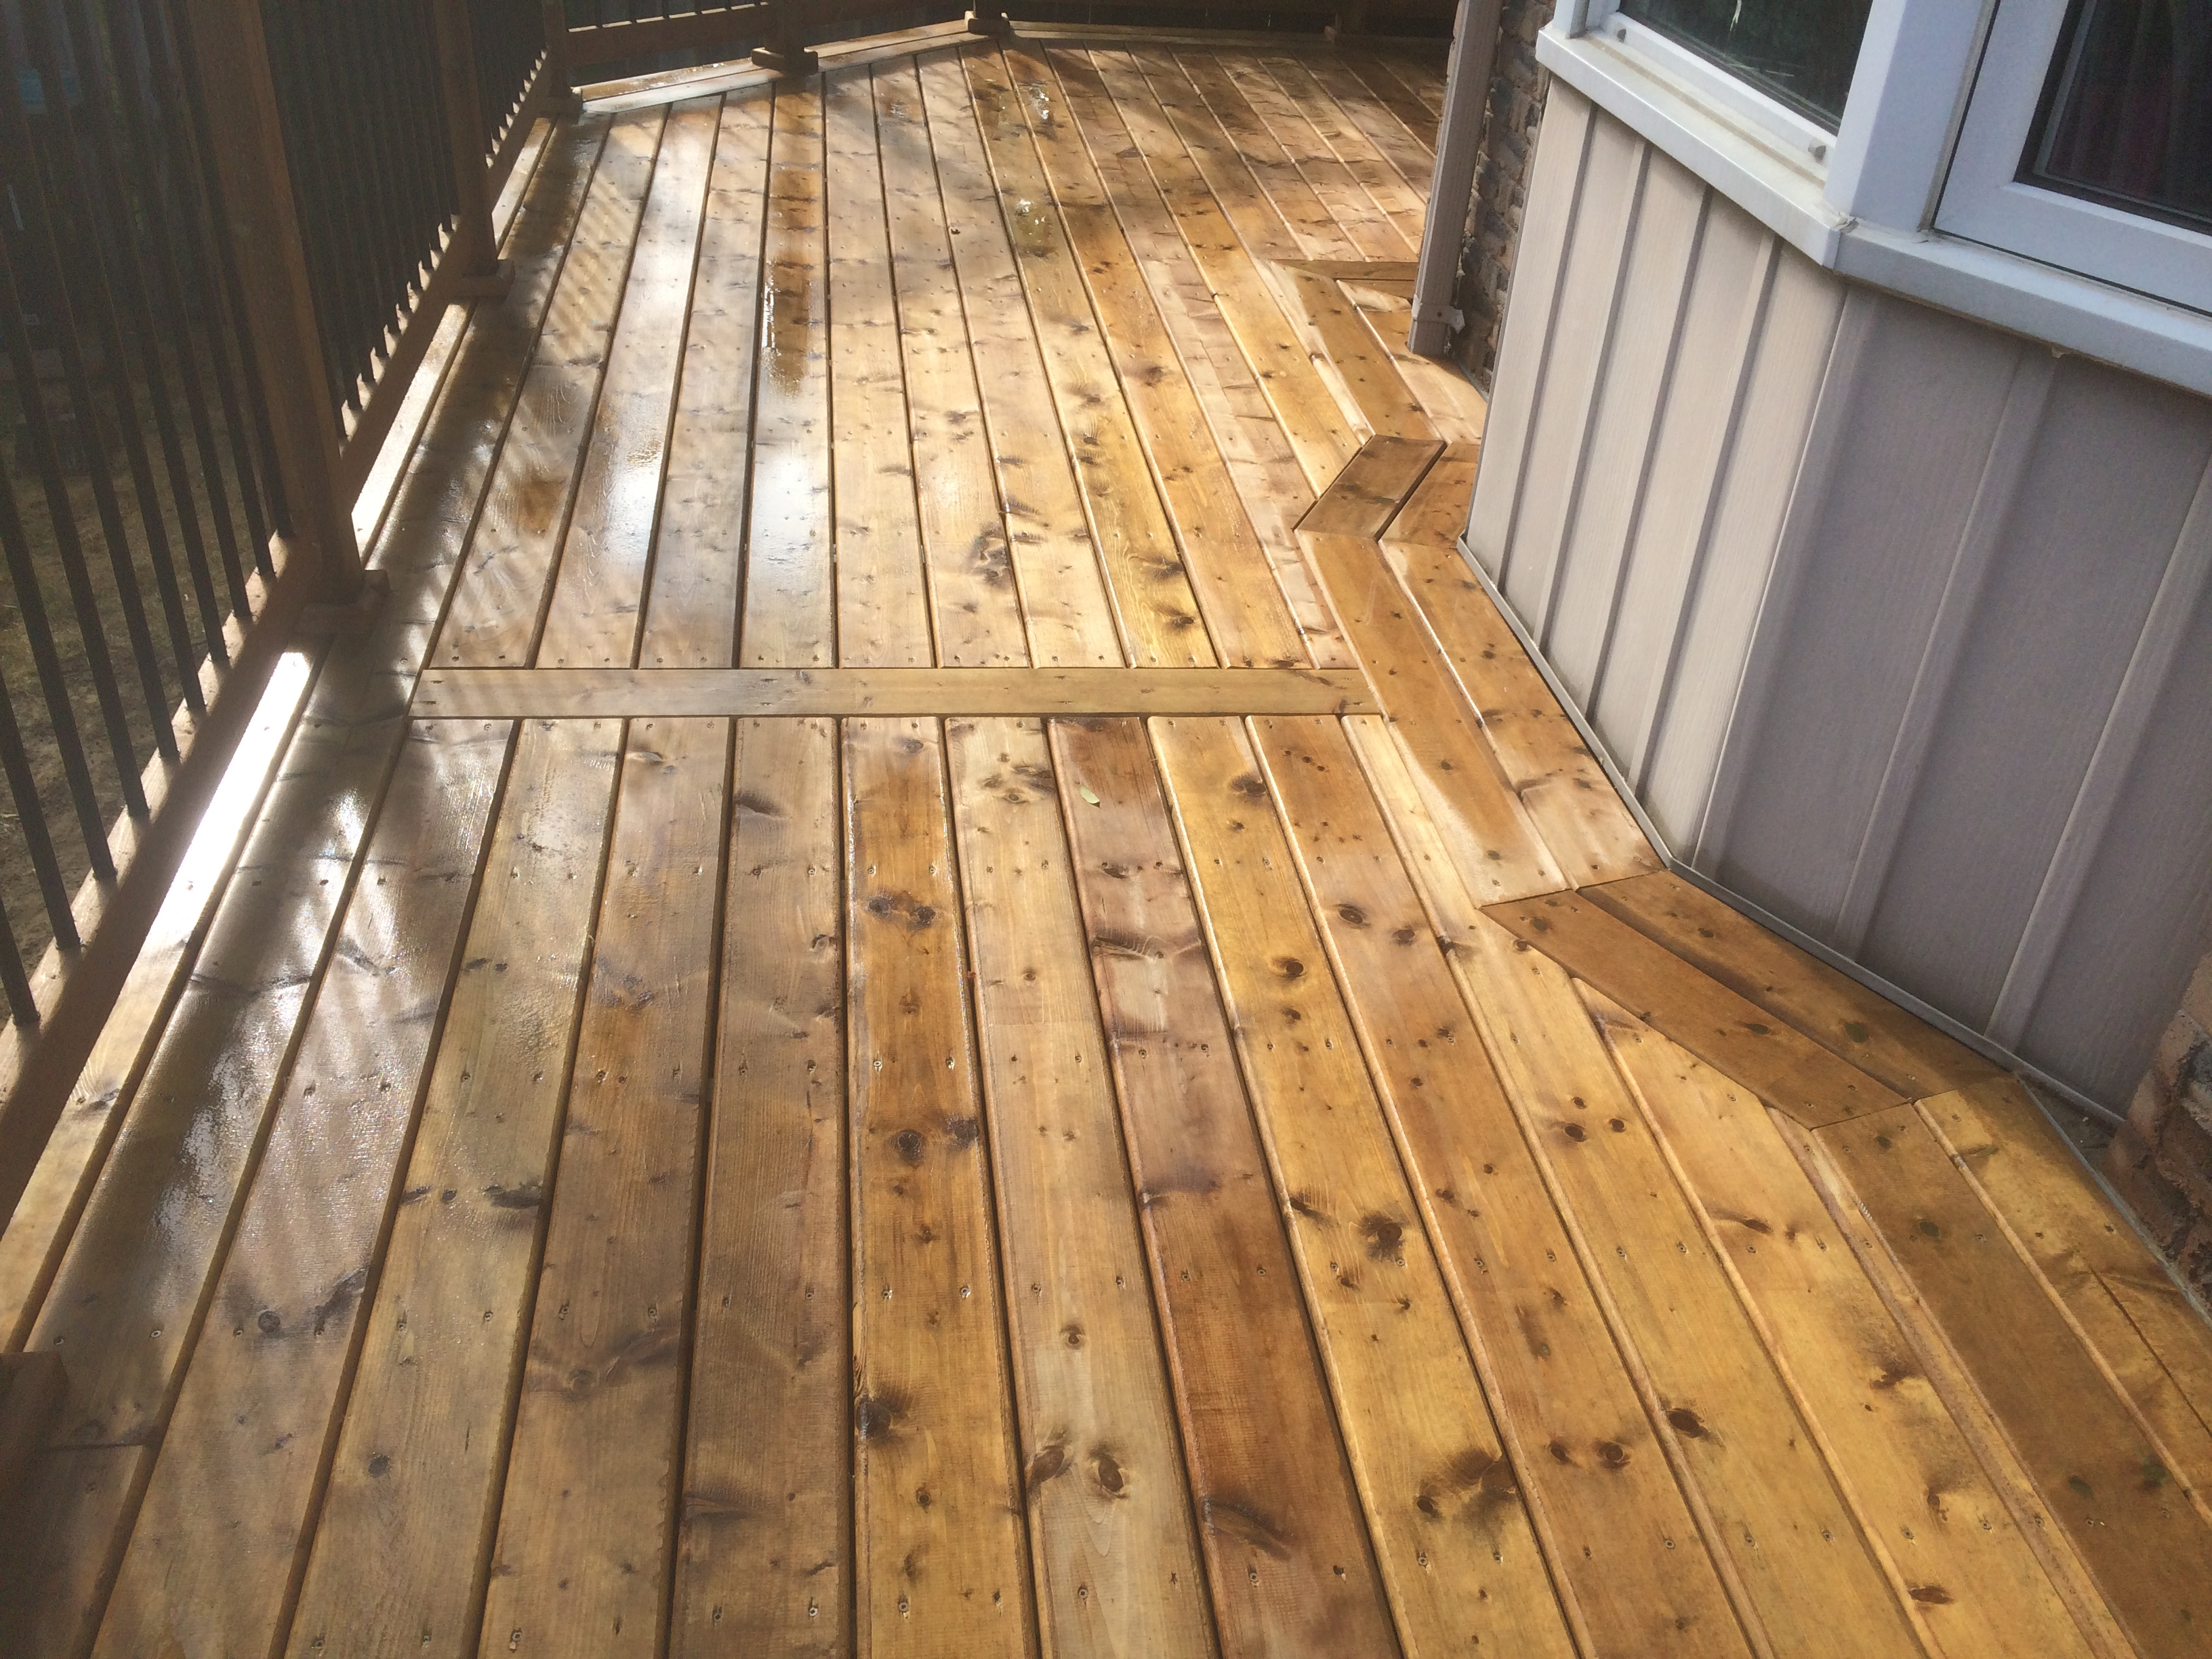 Redcastle Deck - After Construction Bay Decking